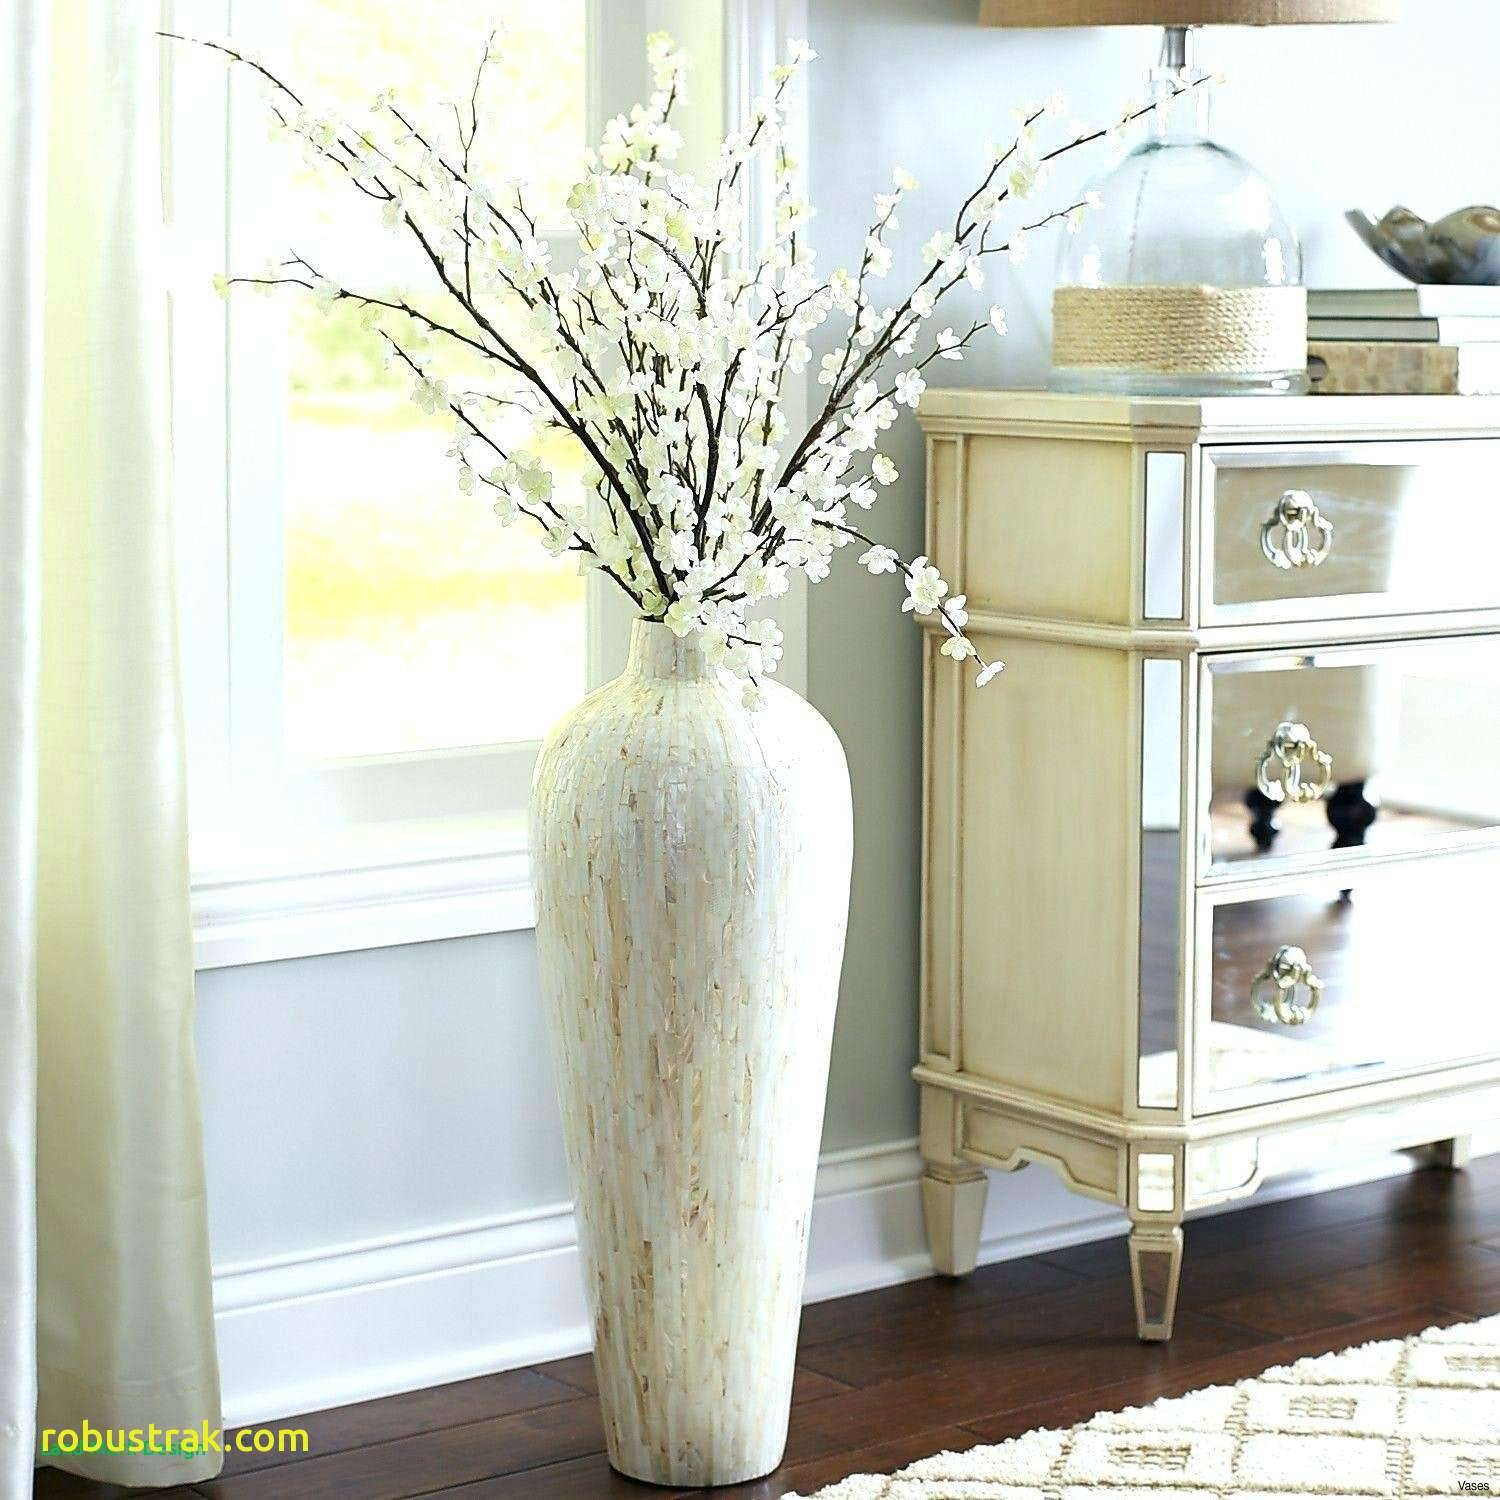 tall floor vase fillers of 20 elegant large floor vase decoration ideas bogekompresorturkiye with regard to tall floor vaseh vases extra large vase vasei 0d tall vase with branches